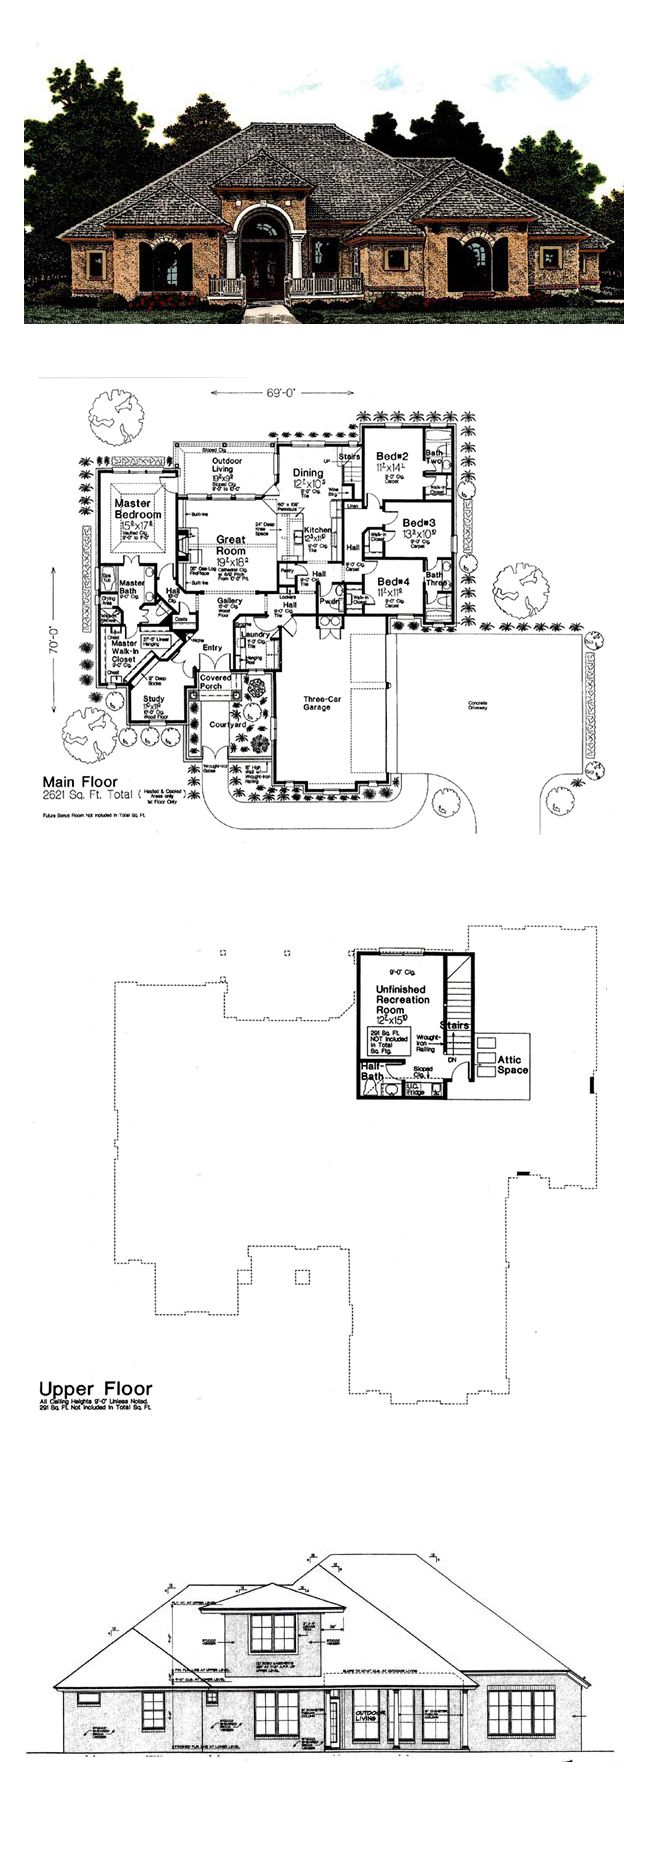 European house plan 92295 total living area 2621 sq ft 4 bedrooms